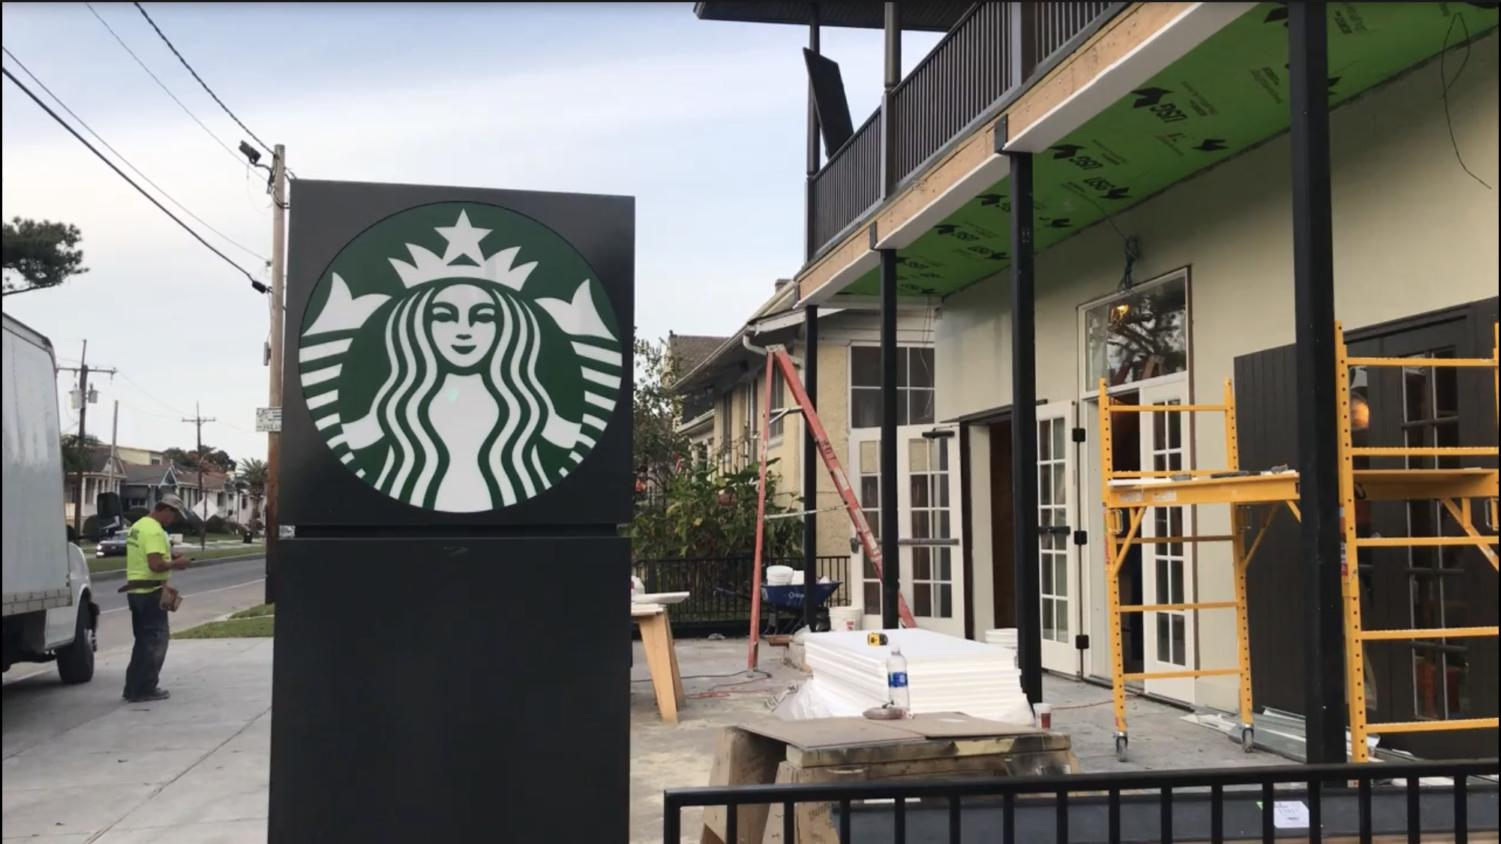 A new Starbucks location is under construction at the corner of Jefferson Avenue and Freret Street.  The sudden influx of chain stores along Freret has been unsettling for some local residents. Photo credit: Mairead Cahill